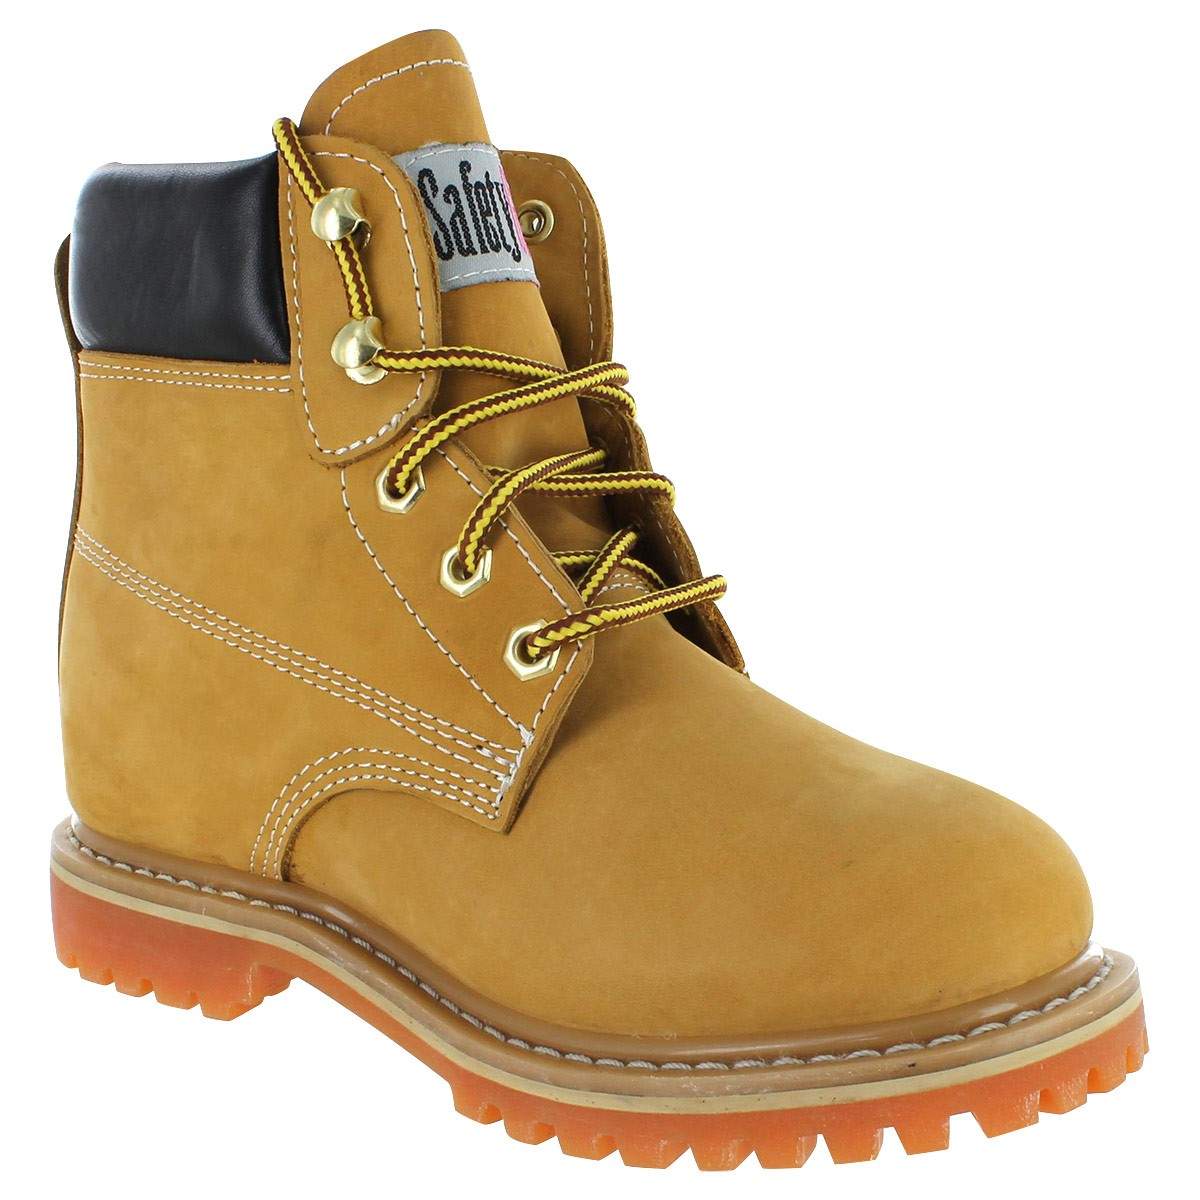 work boots for women safety girl ii sheepskin lined work boots - tan FSRXAPO